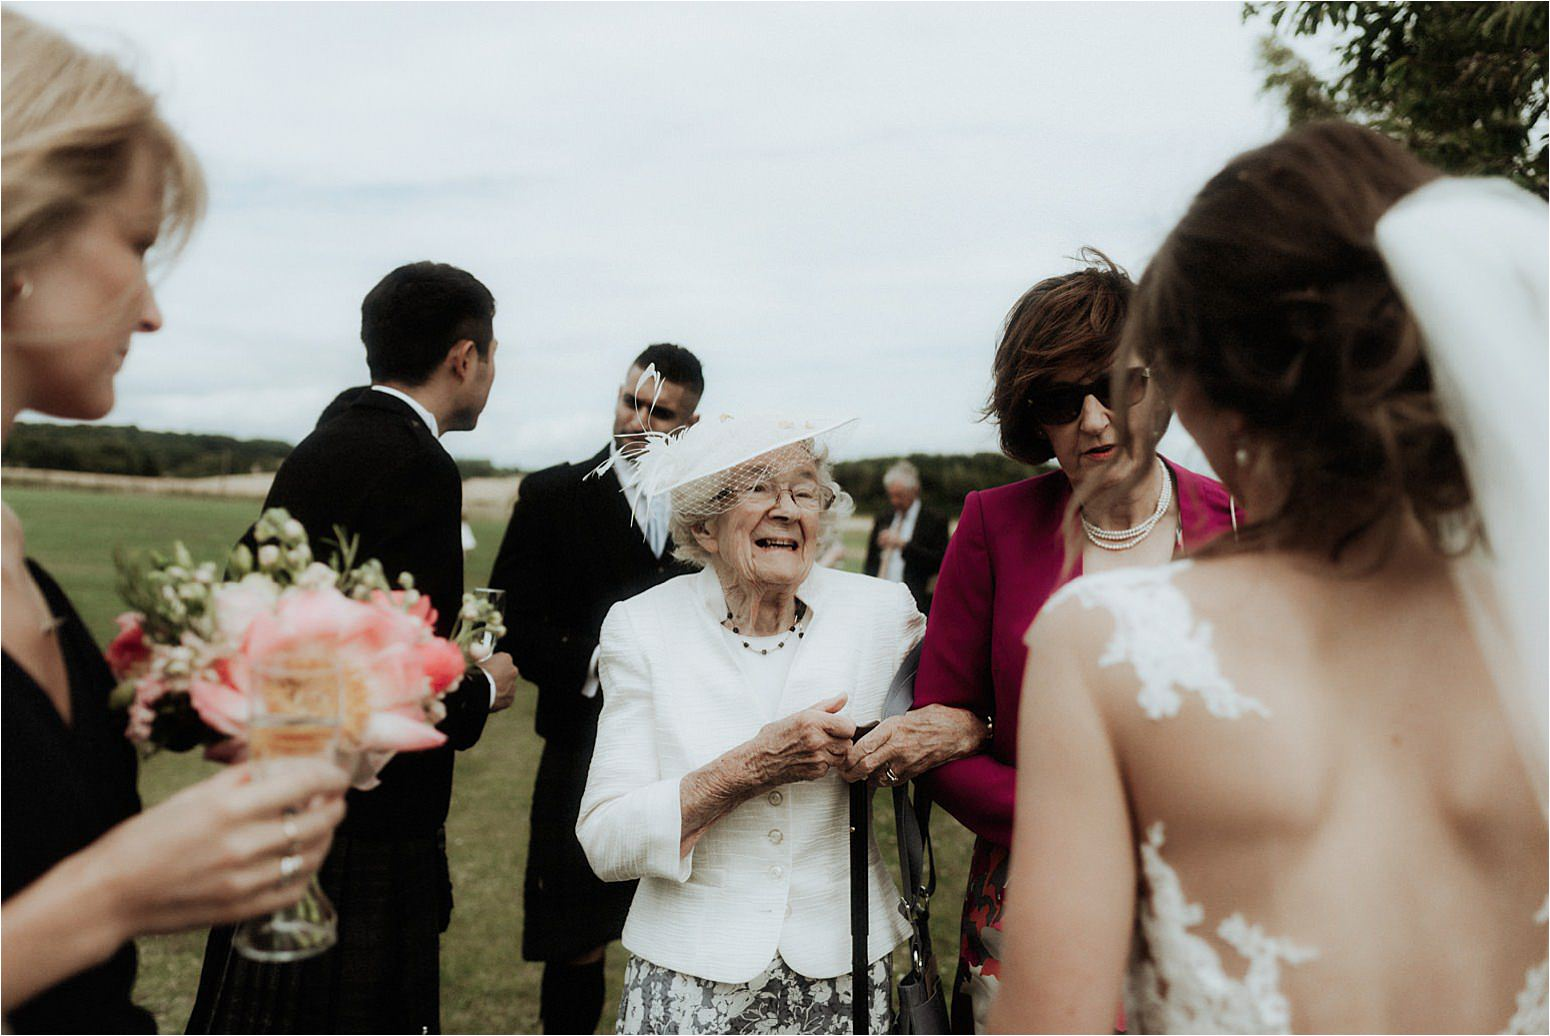 scottish wedding at bachilton barn candid guest